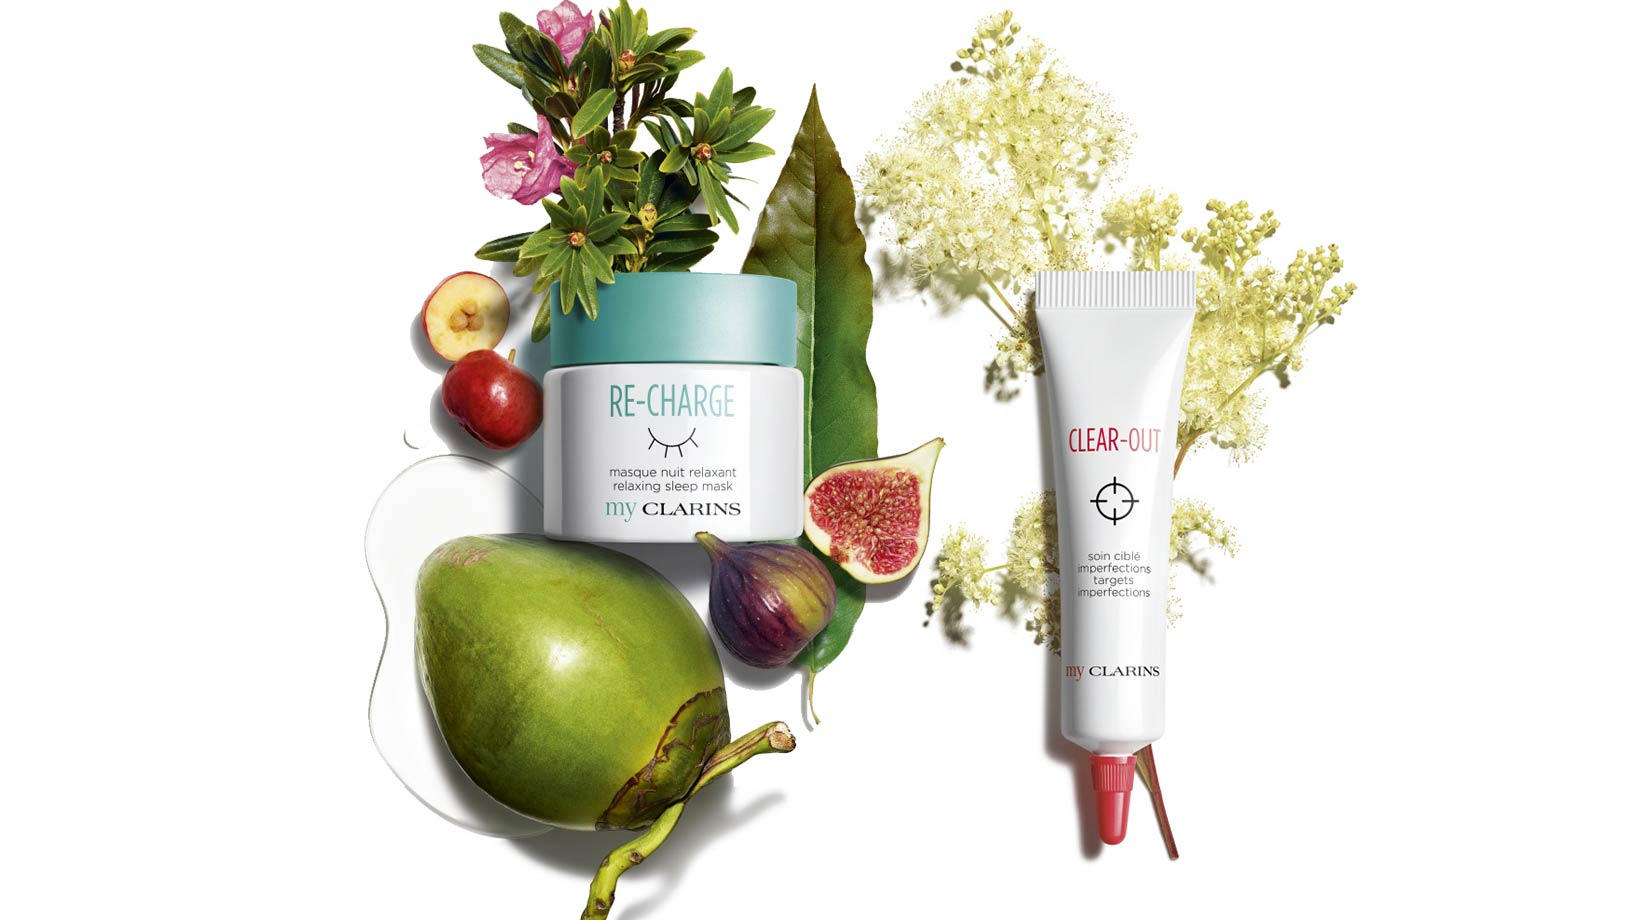 My Clarins Re-Charge and My Clarins Clear-Out on a white background surrounded by wild flowers, figs, and other green and red fruit